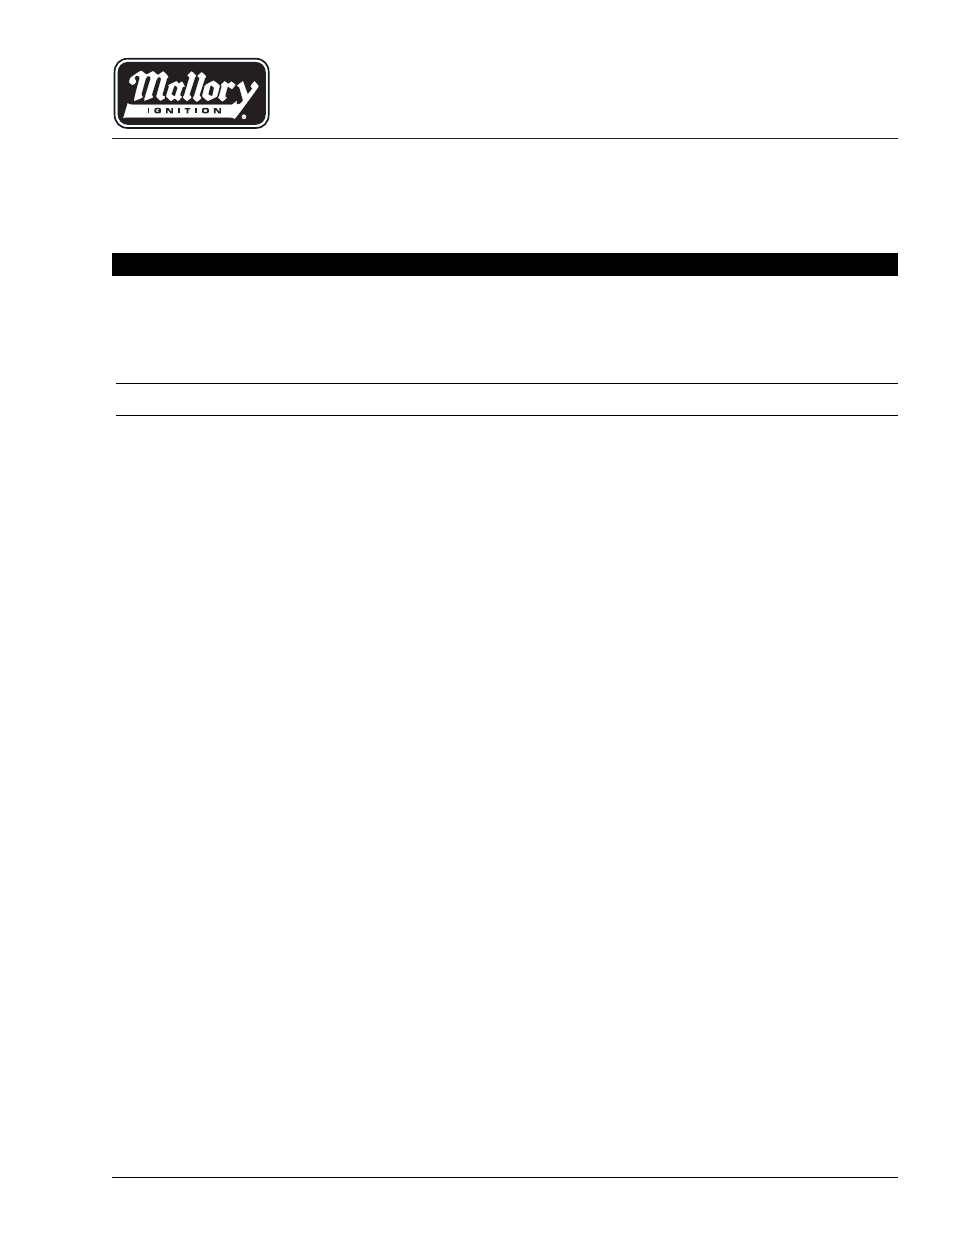 Mallory Ignition Unilite Distributor User Manual 13 Pages Spark Plug Wire Harness Also For 605